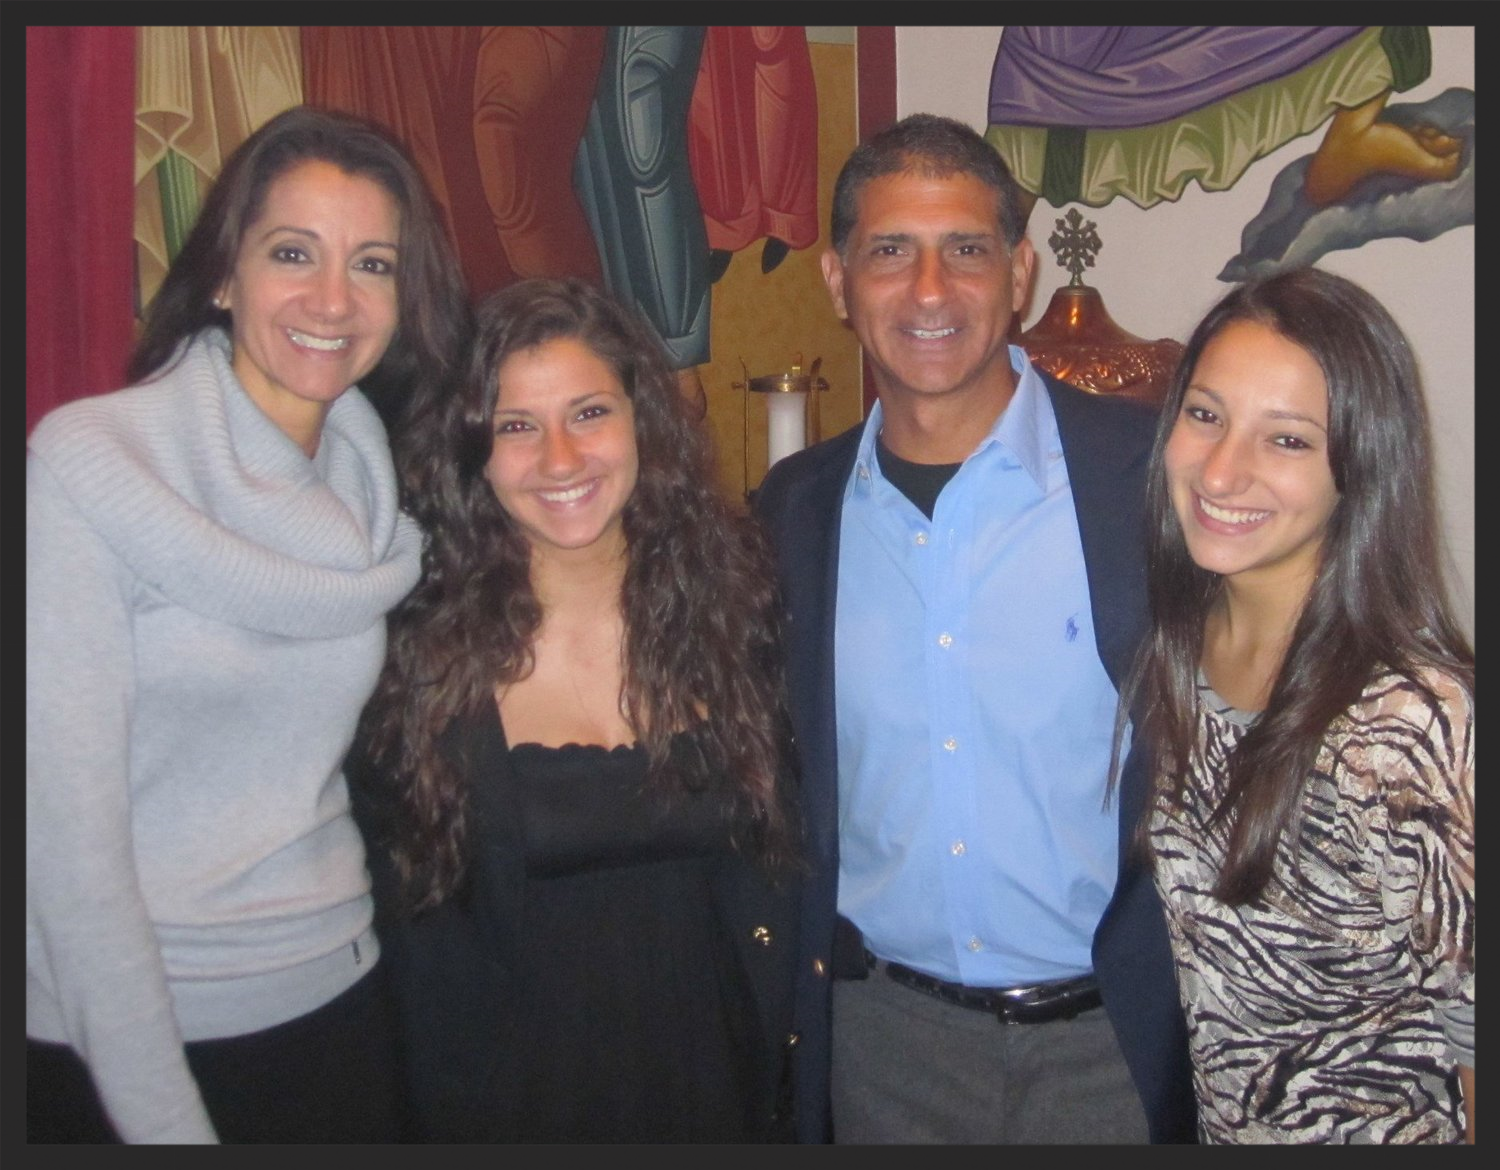 Joelynne, with daughters Sophia and Irene and husband Steve